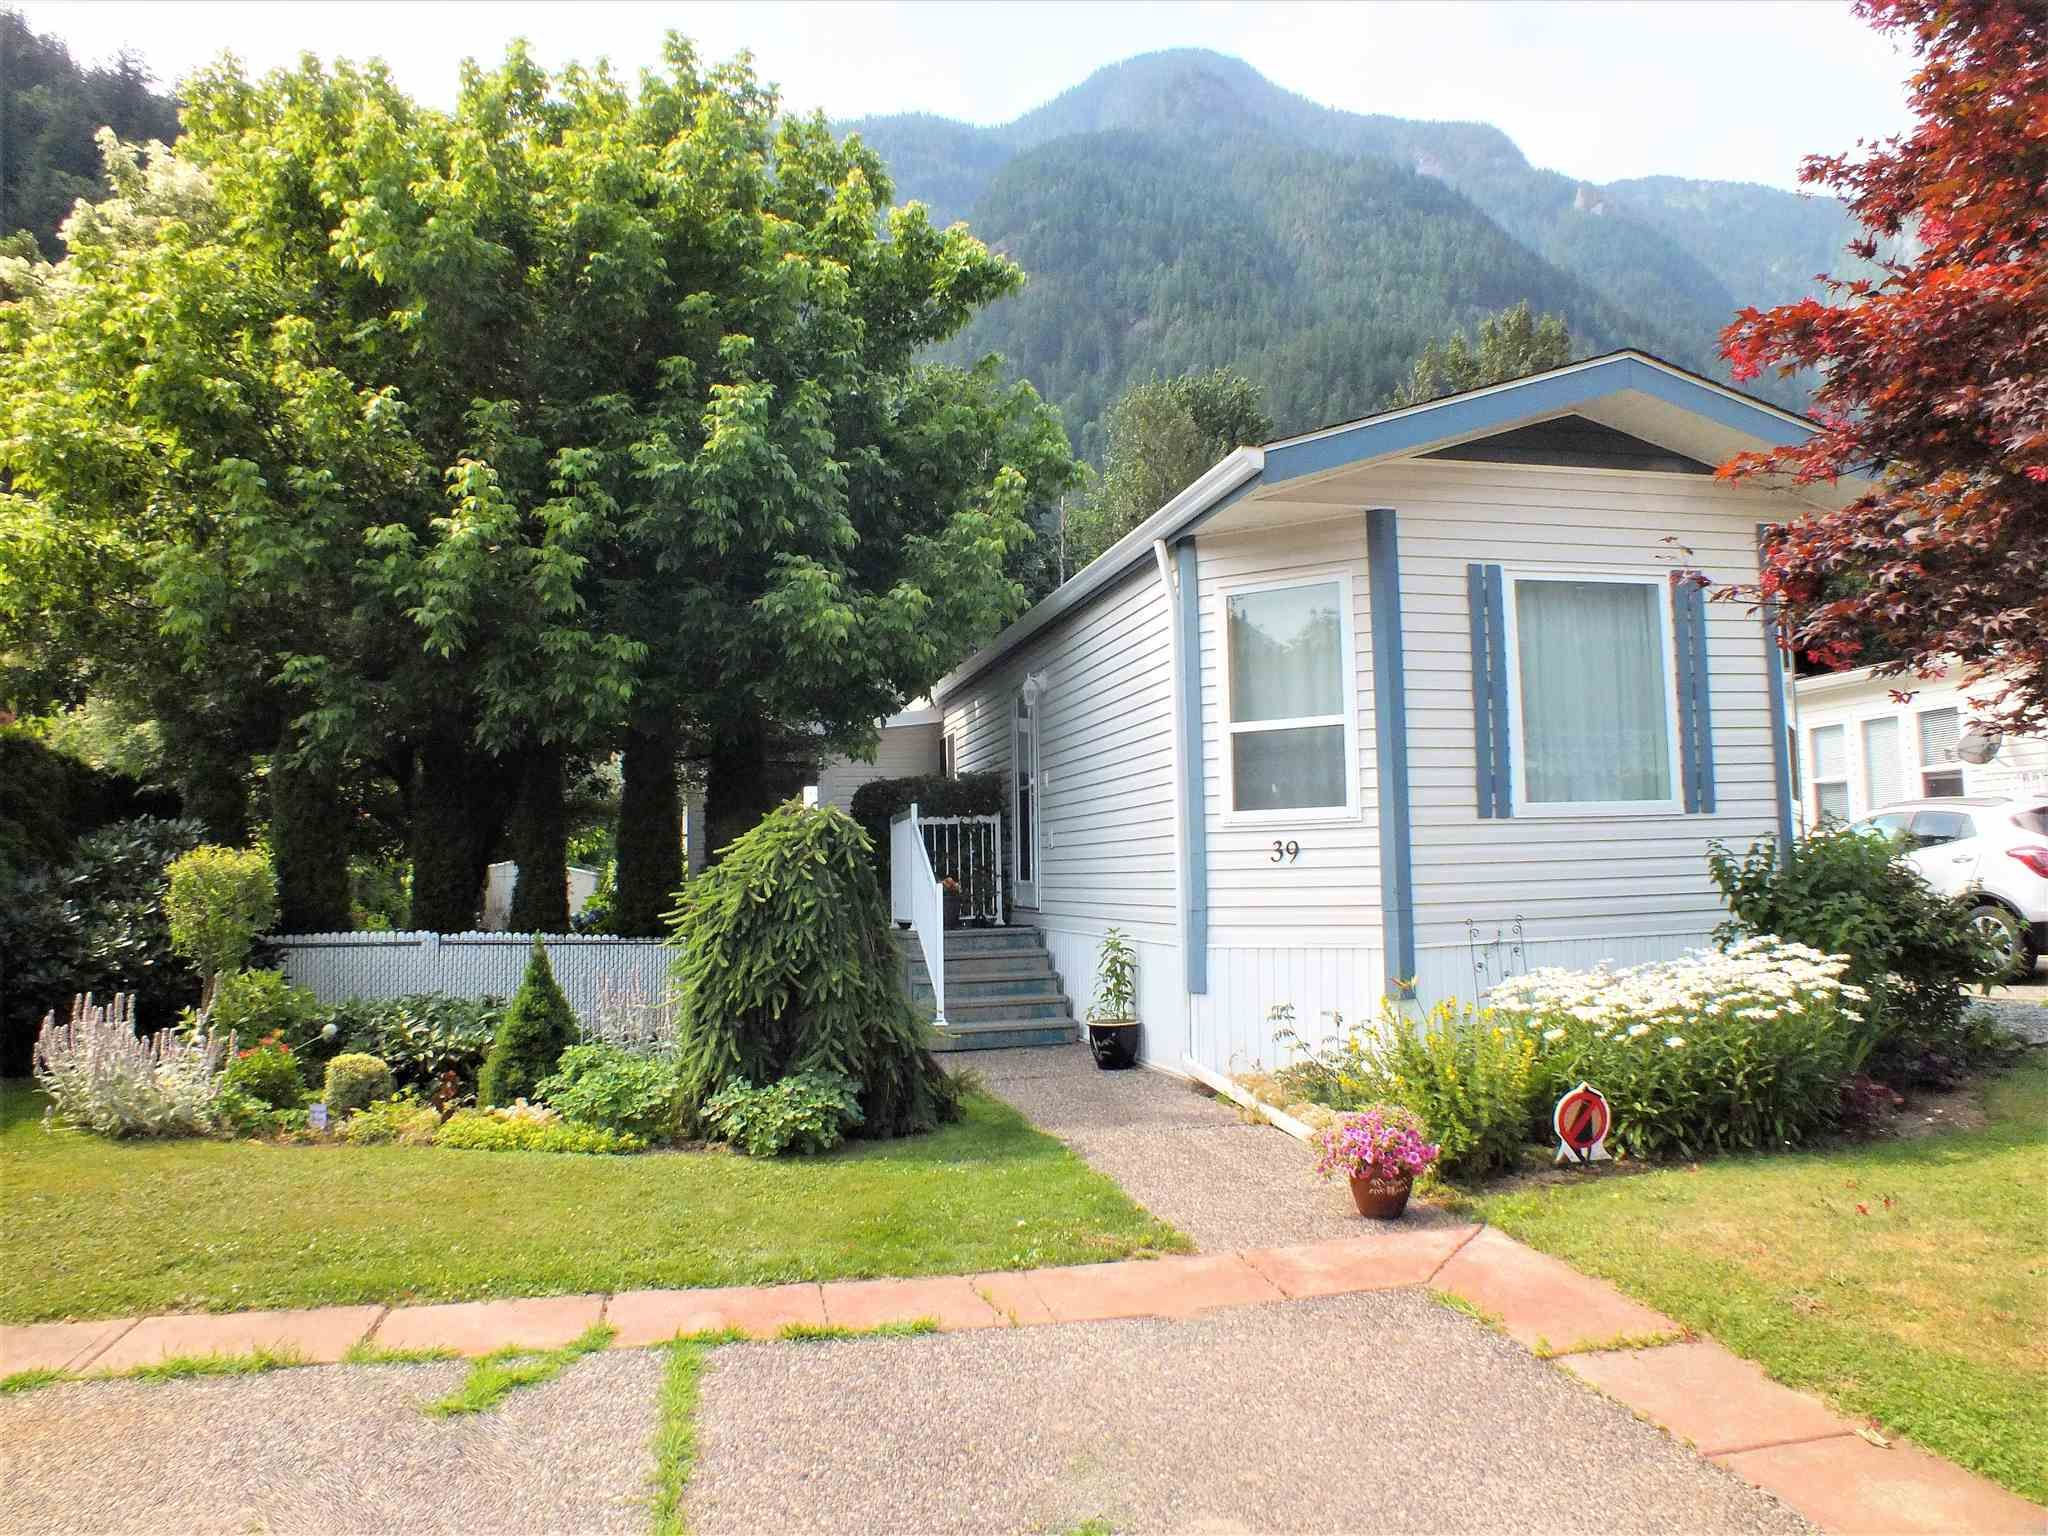 """Main Photo: 39 62790 FLOOD HOPE Road in Hope: Hope Silver Creek Manufactured Home for sale in """"SILVER RIDGE ESTATES"""" : MLS®# R2600283"""